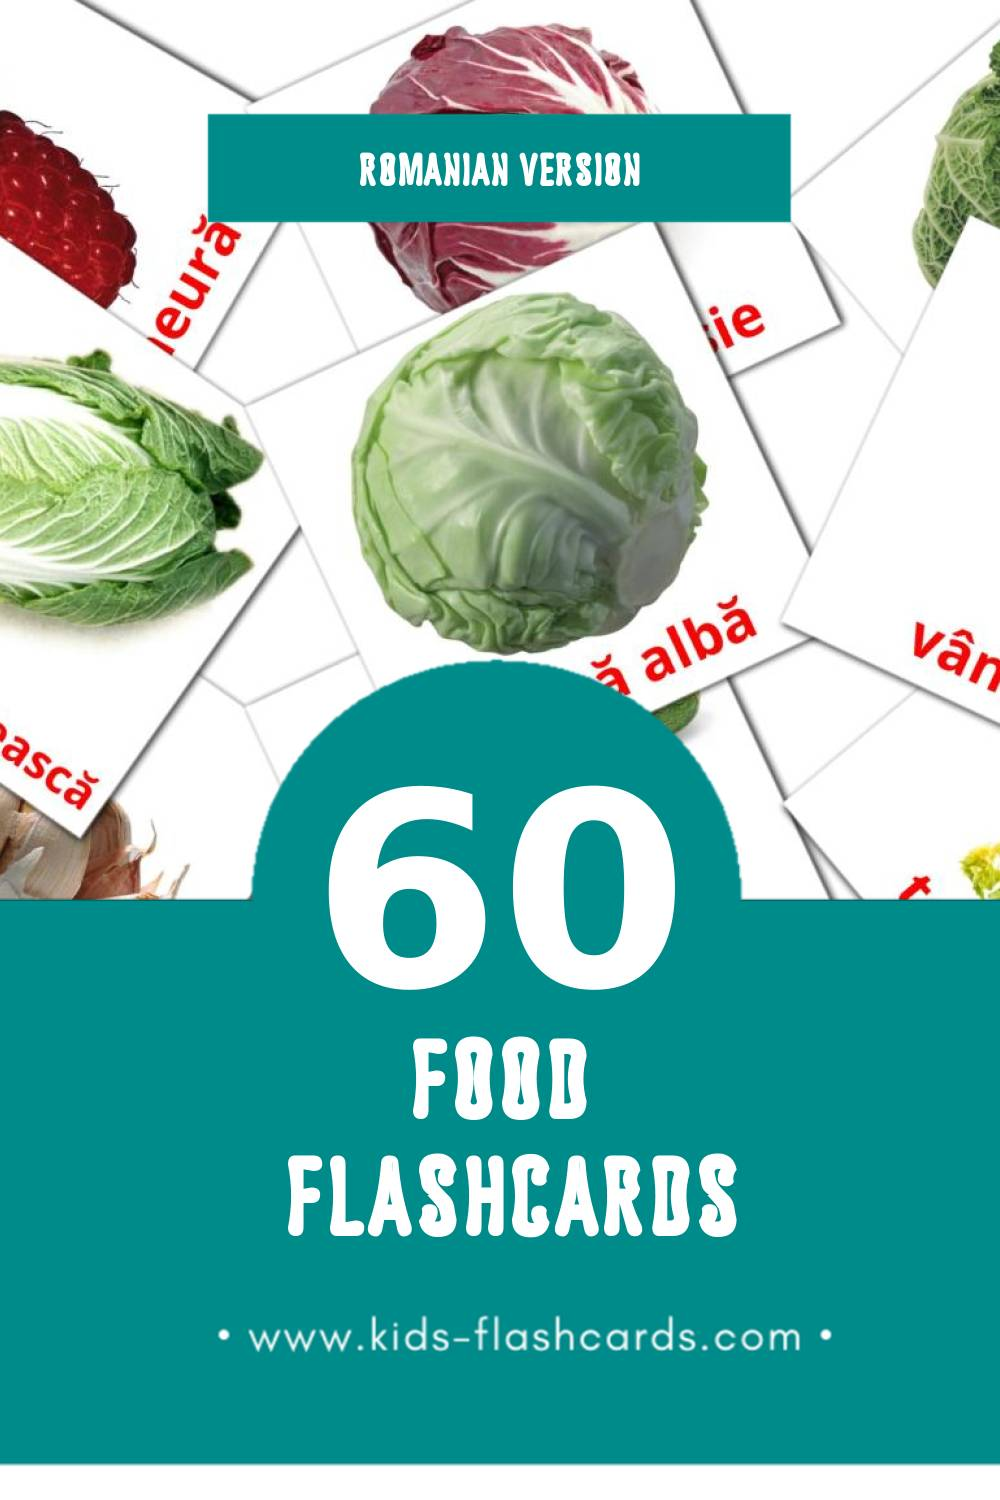 Visual Alimente Flashcards for Toddlers (60 cards in Romanian)